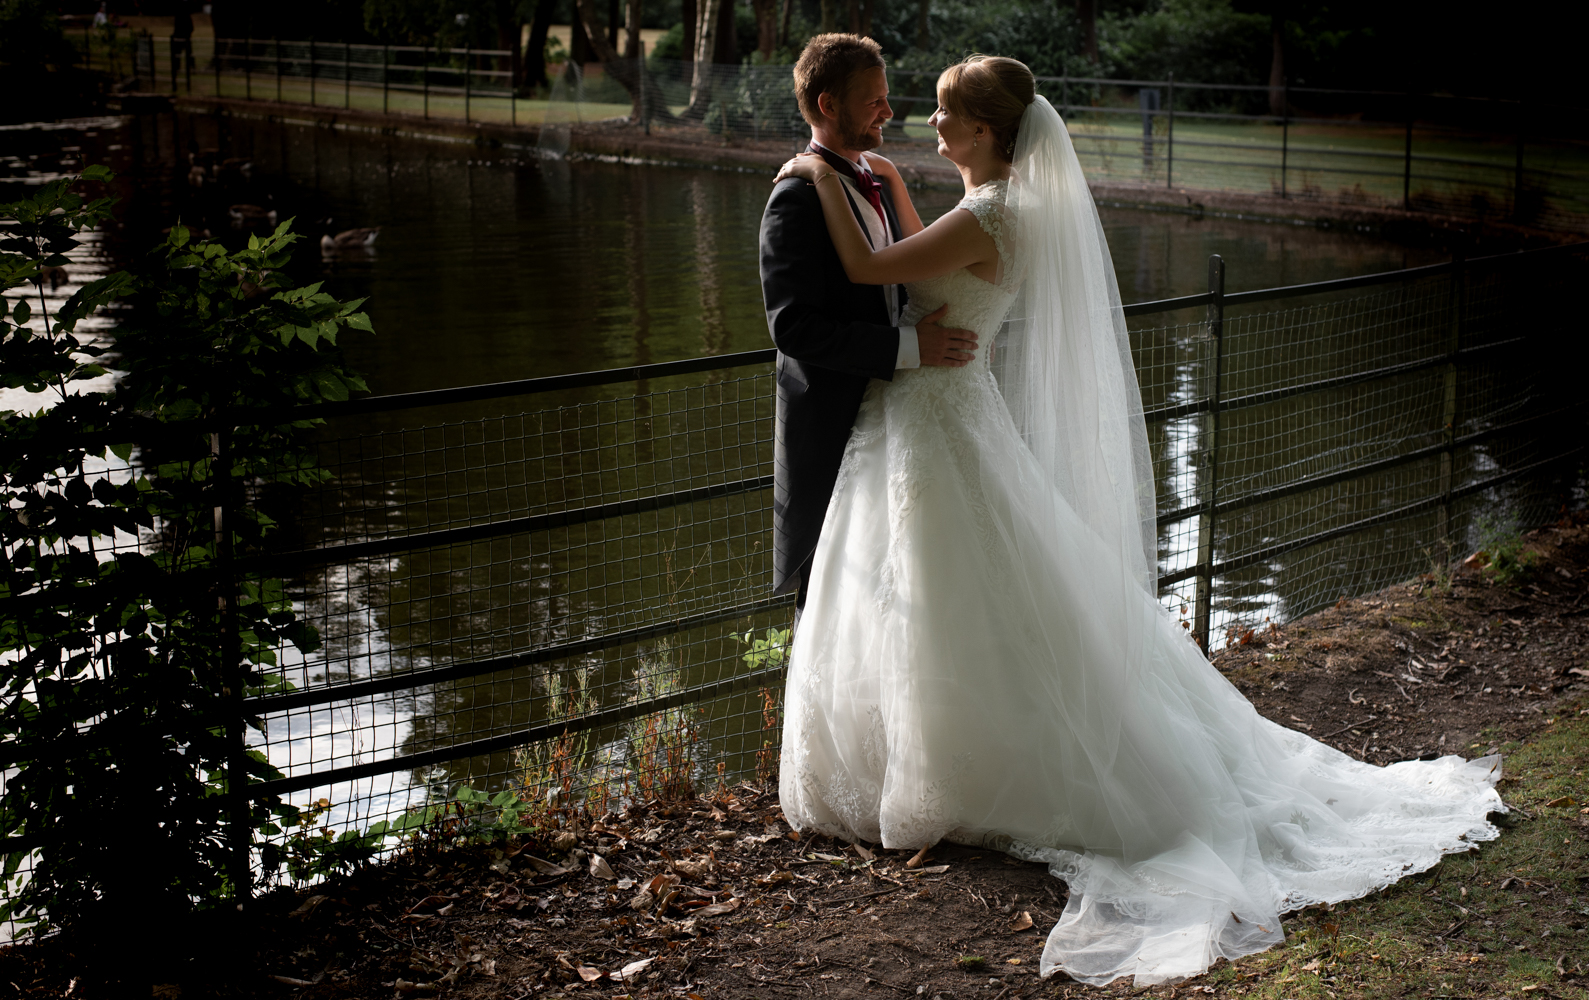 Another photo of the bride and groom standing by the lake in the early evening sunlight